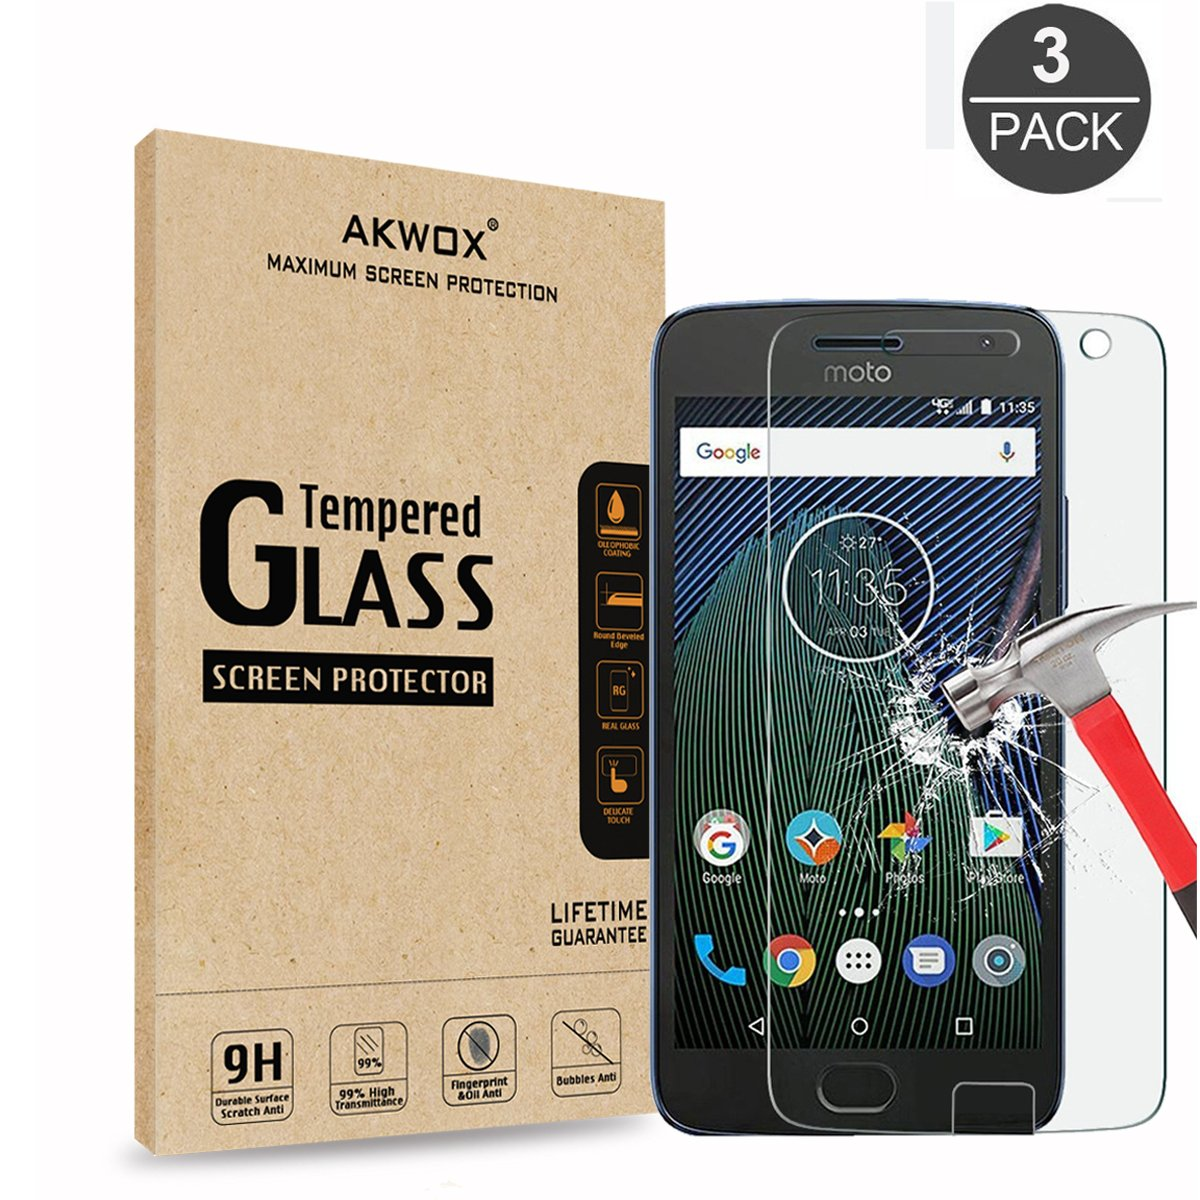 (3-Pack) Tempered Glass Screen Protector for Moto G5 Plus, Akwox Ultra thin [0.3mm 2.5D High Definition 9H] Premium Clear Screen Protective Film For Motorola Moto G 5th Plus Generation